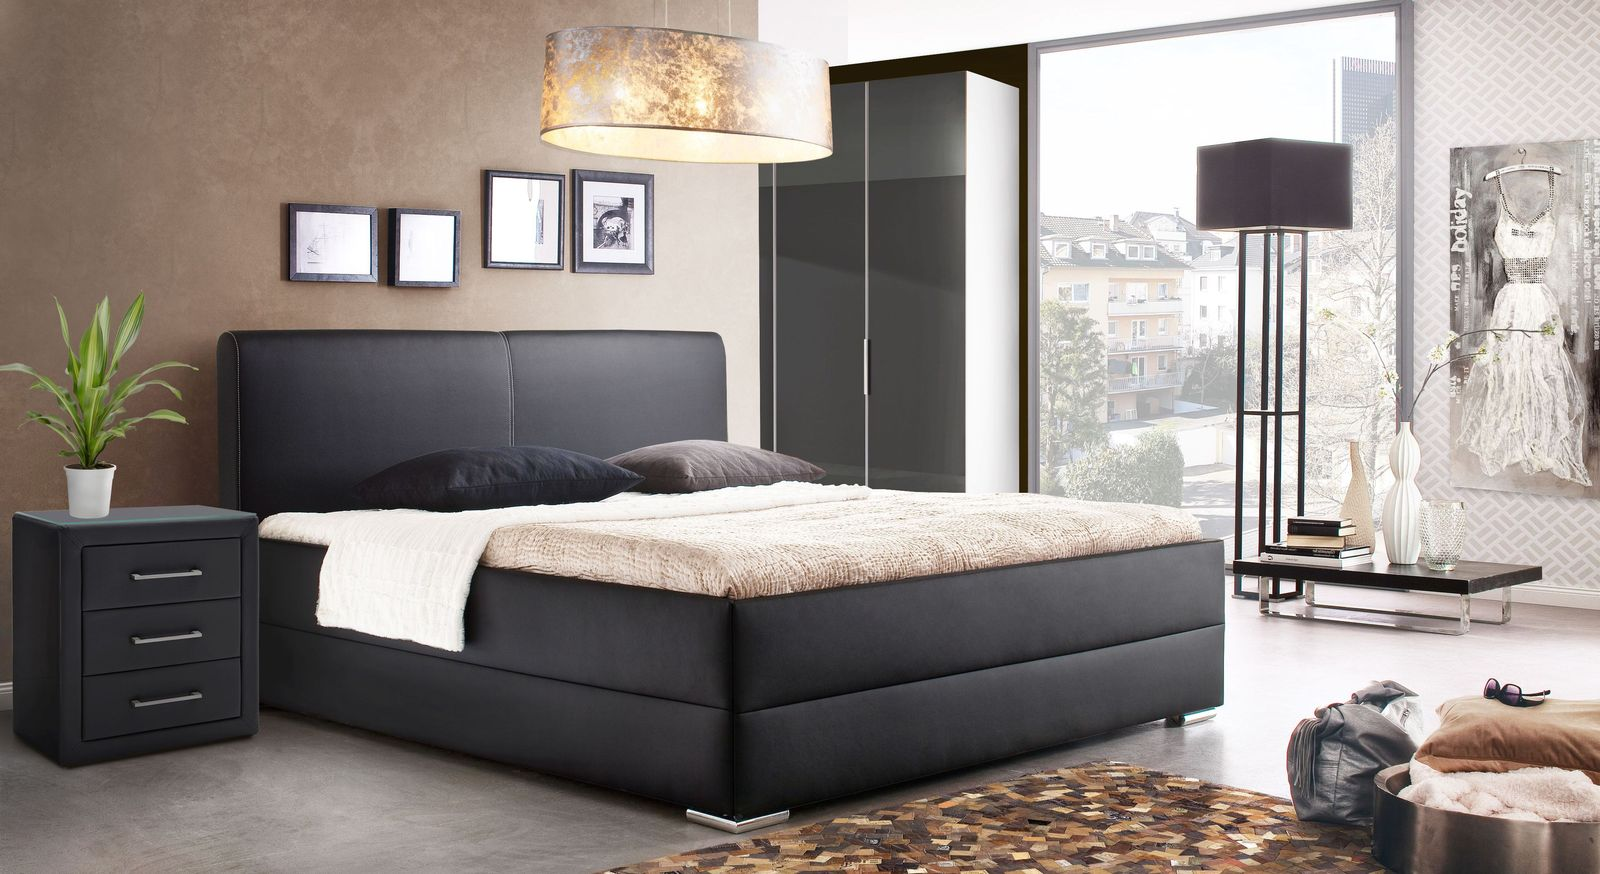 Bett Nulato in trendiger Boxspring-Optik